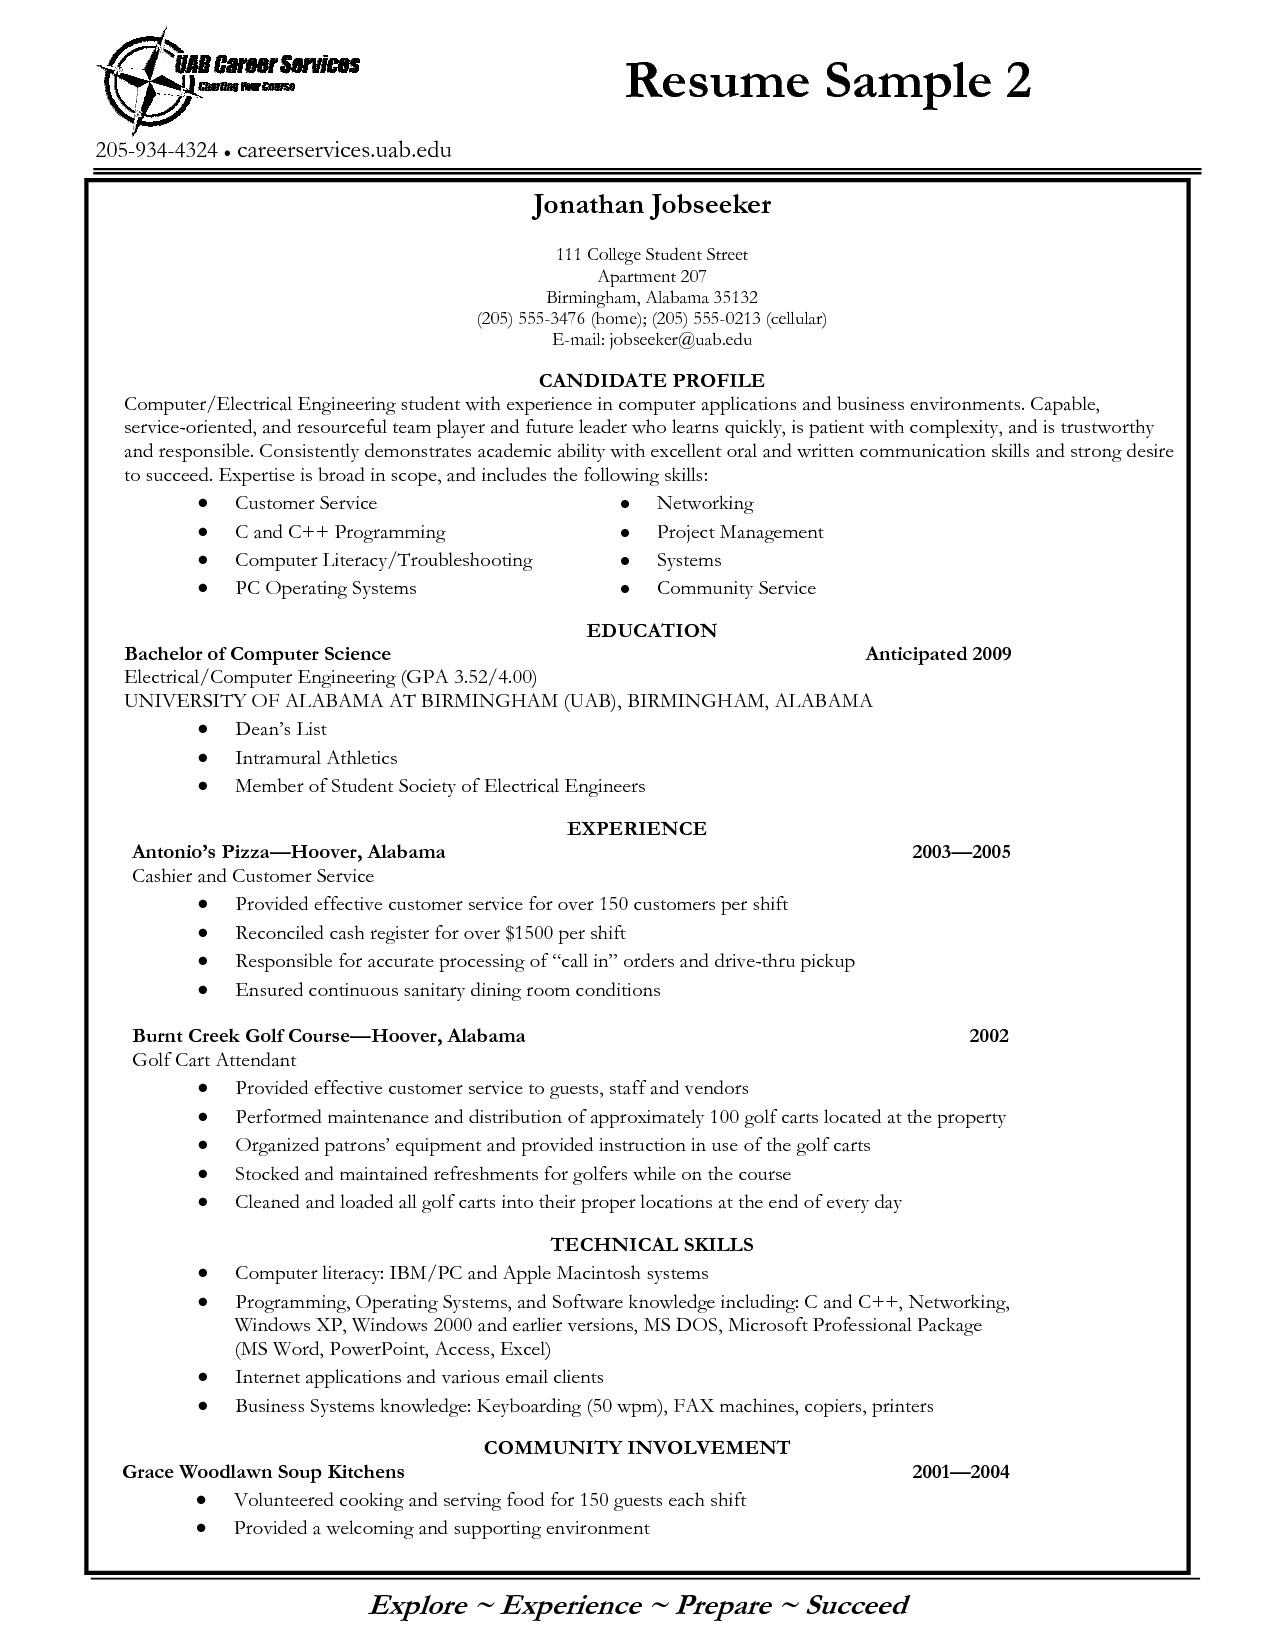 Resume Examples For High School Students Applying To College Resume Examples Free Sample Letter And College Application Resume College Resume Student Resume